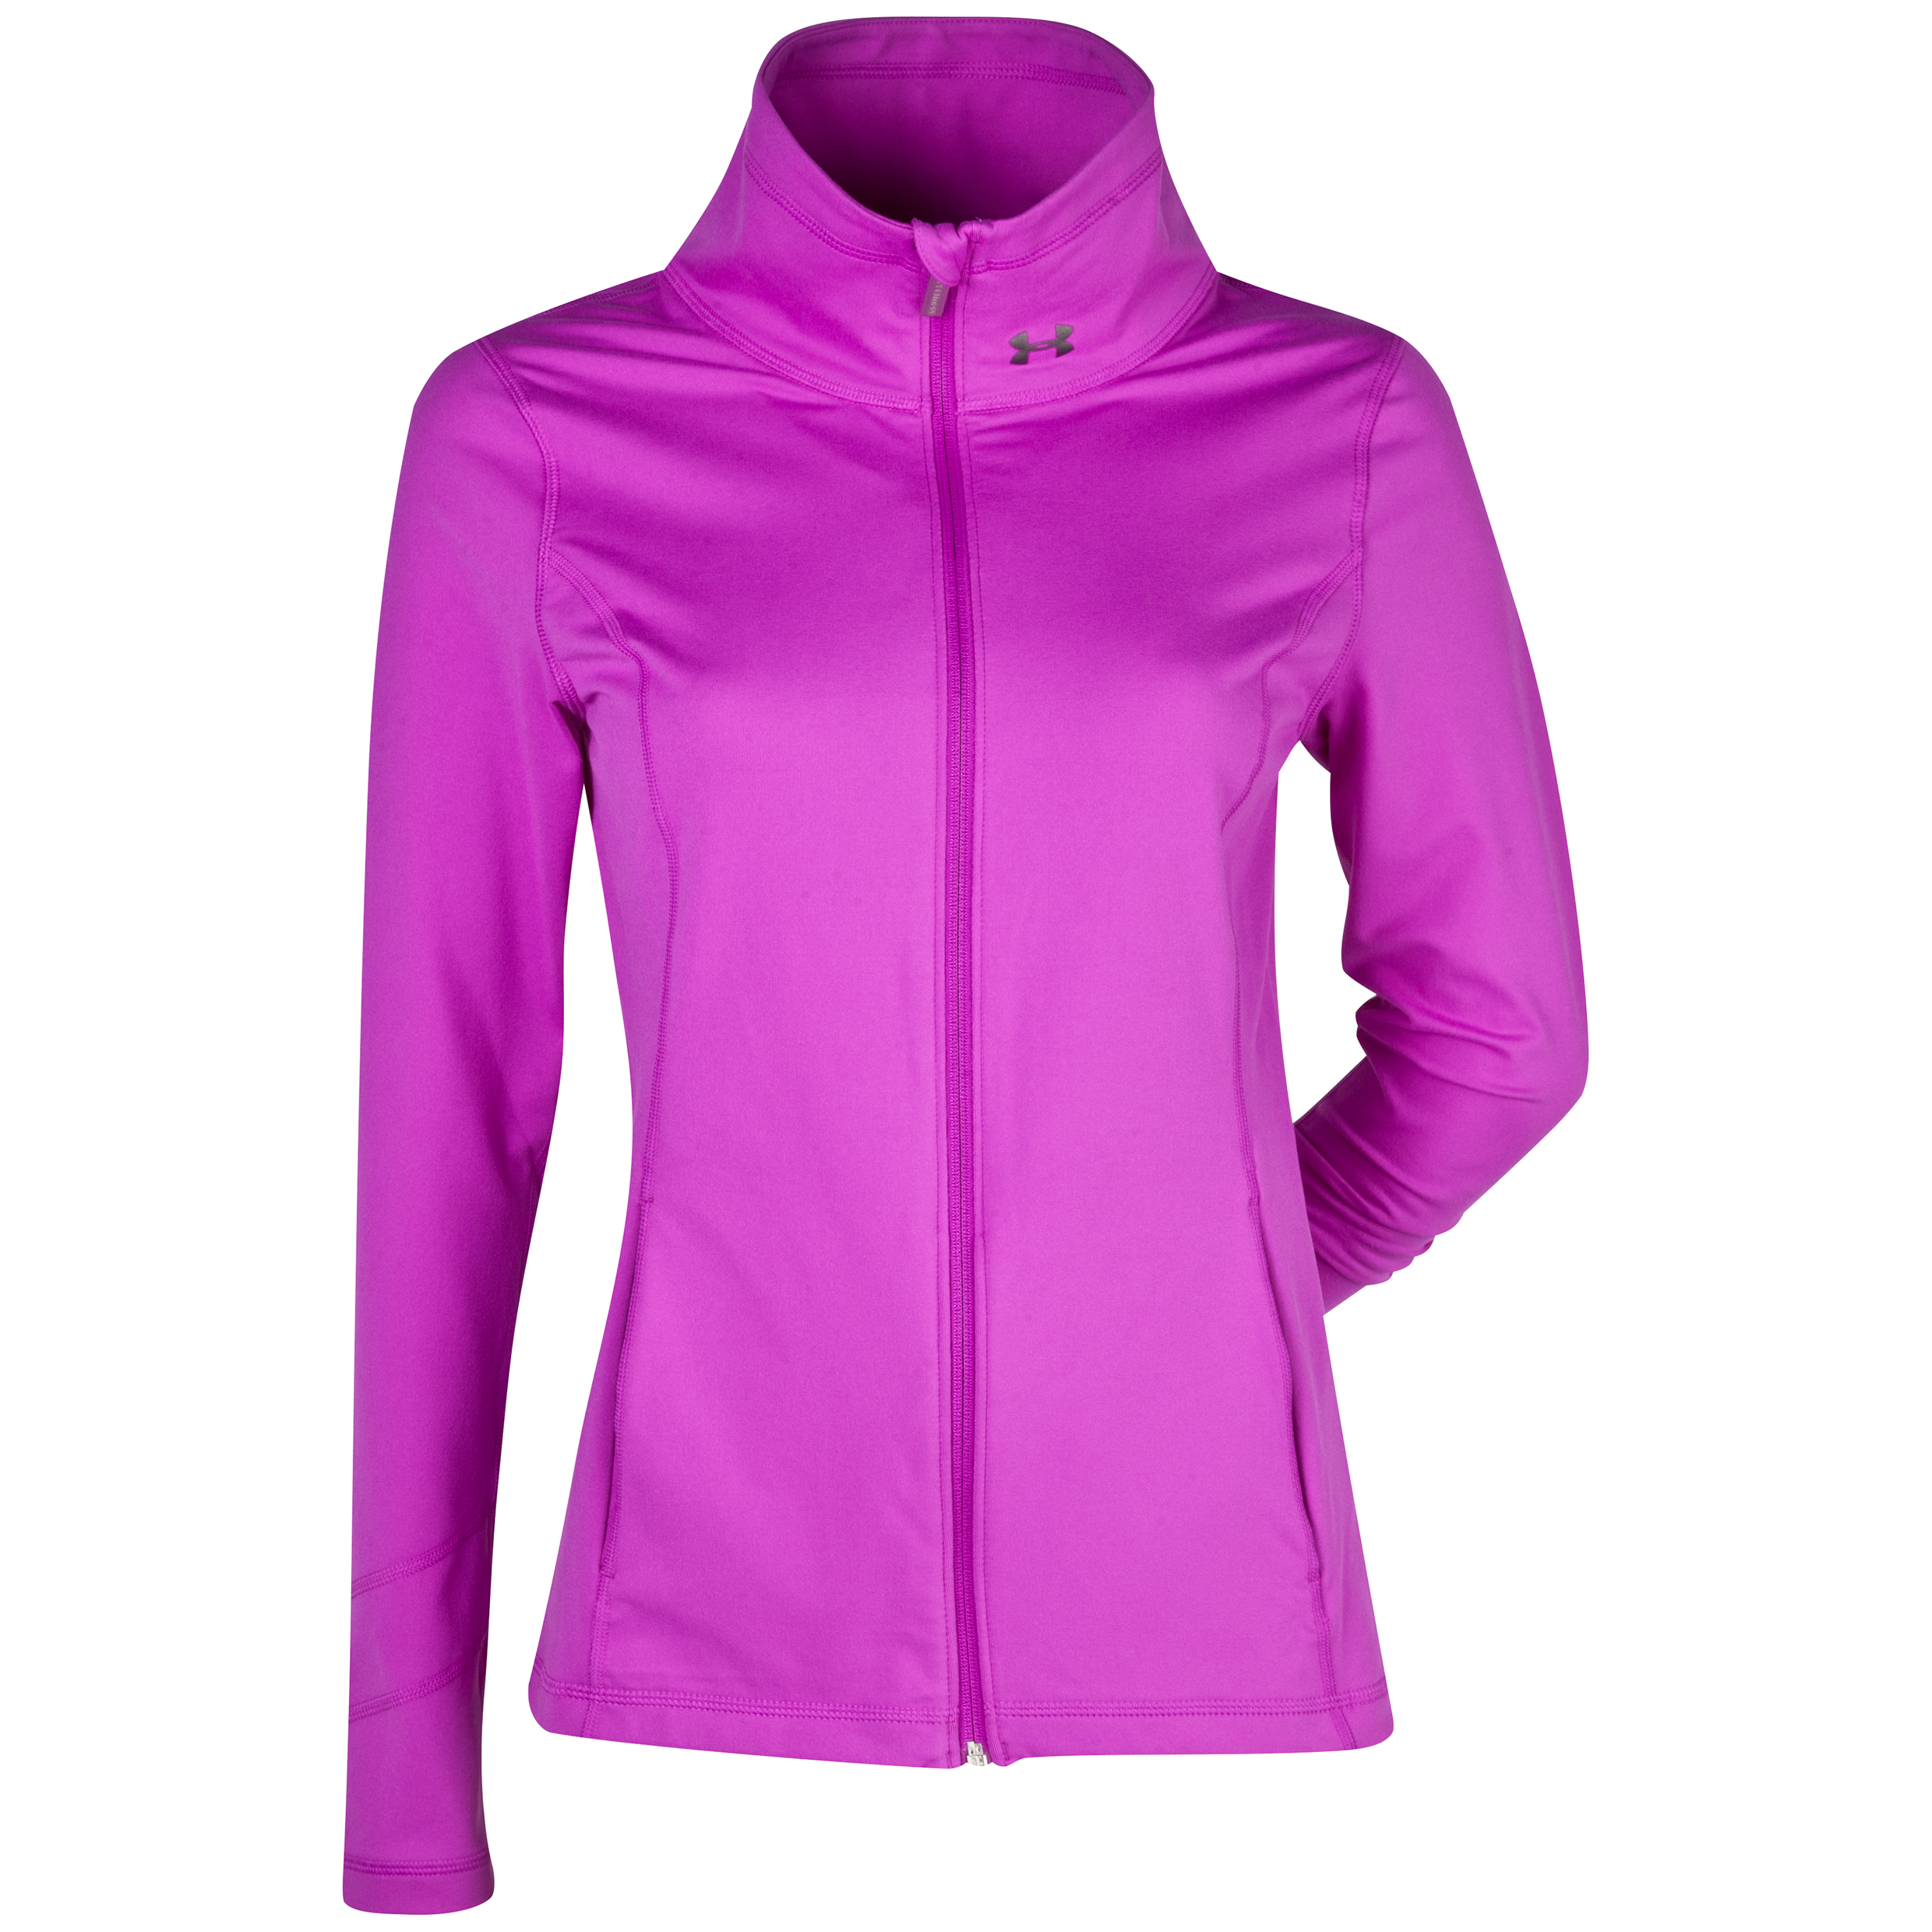 Lifestyle Under Armour Tech Jacket - Purple - Womens Purple